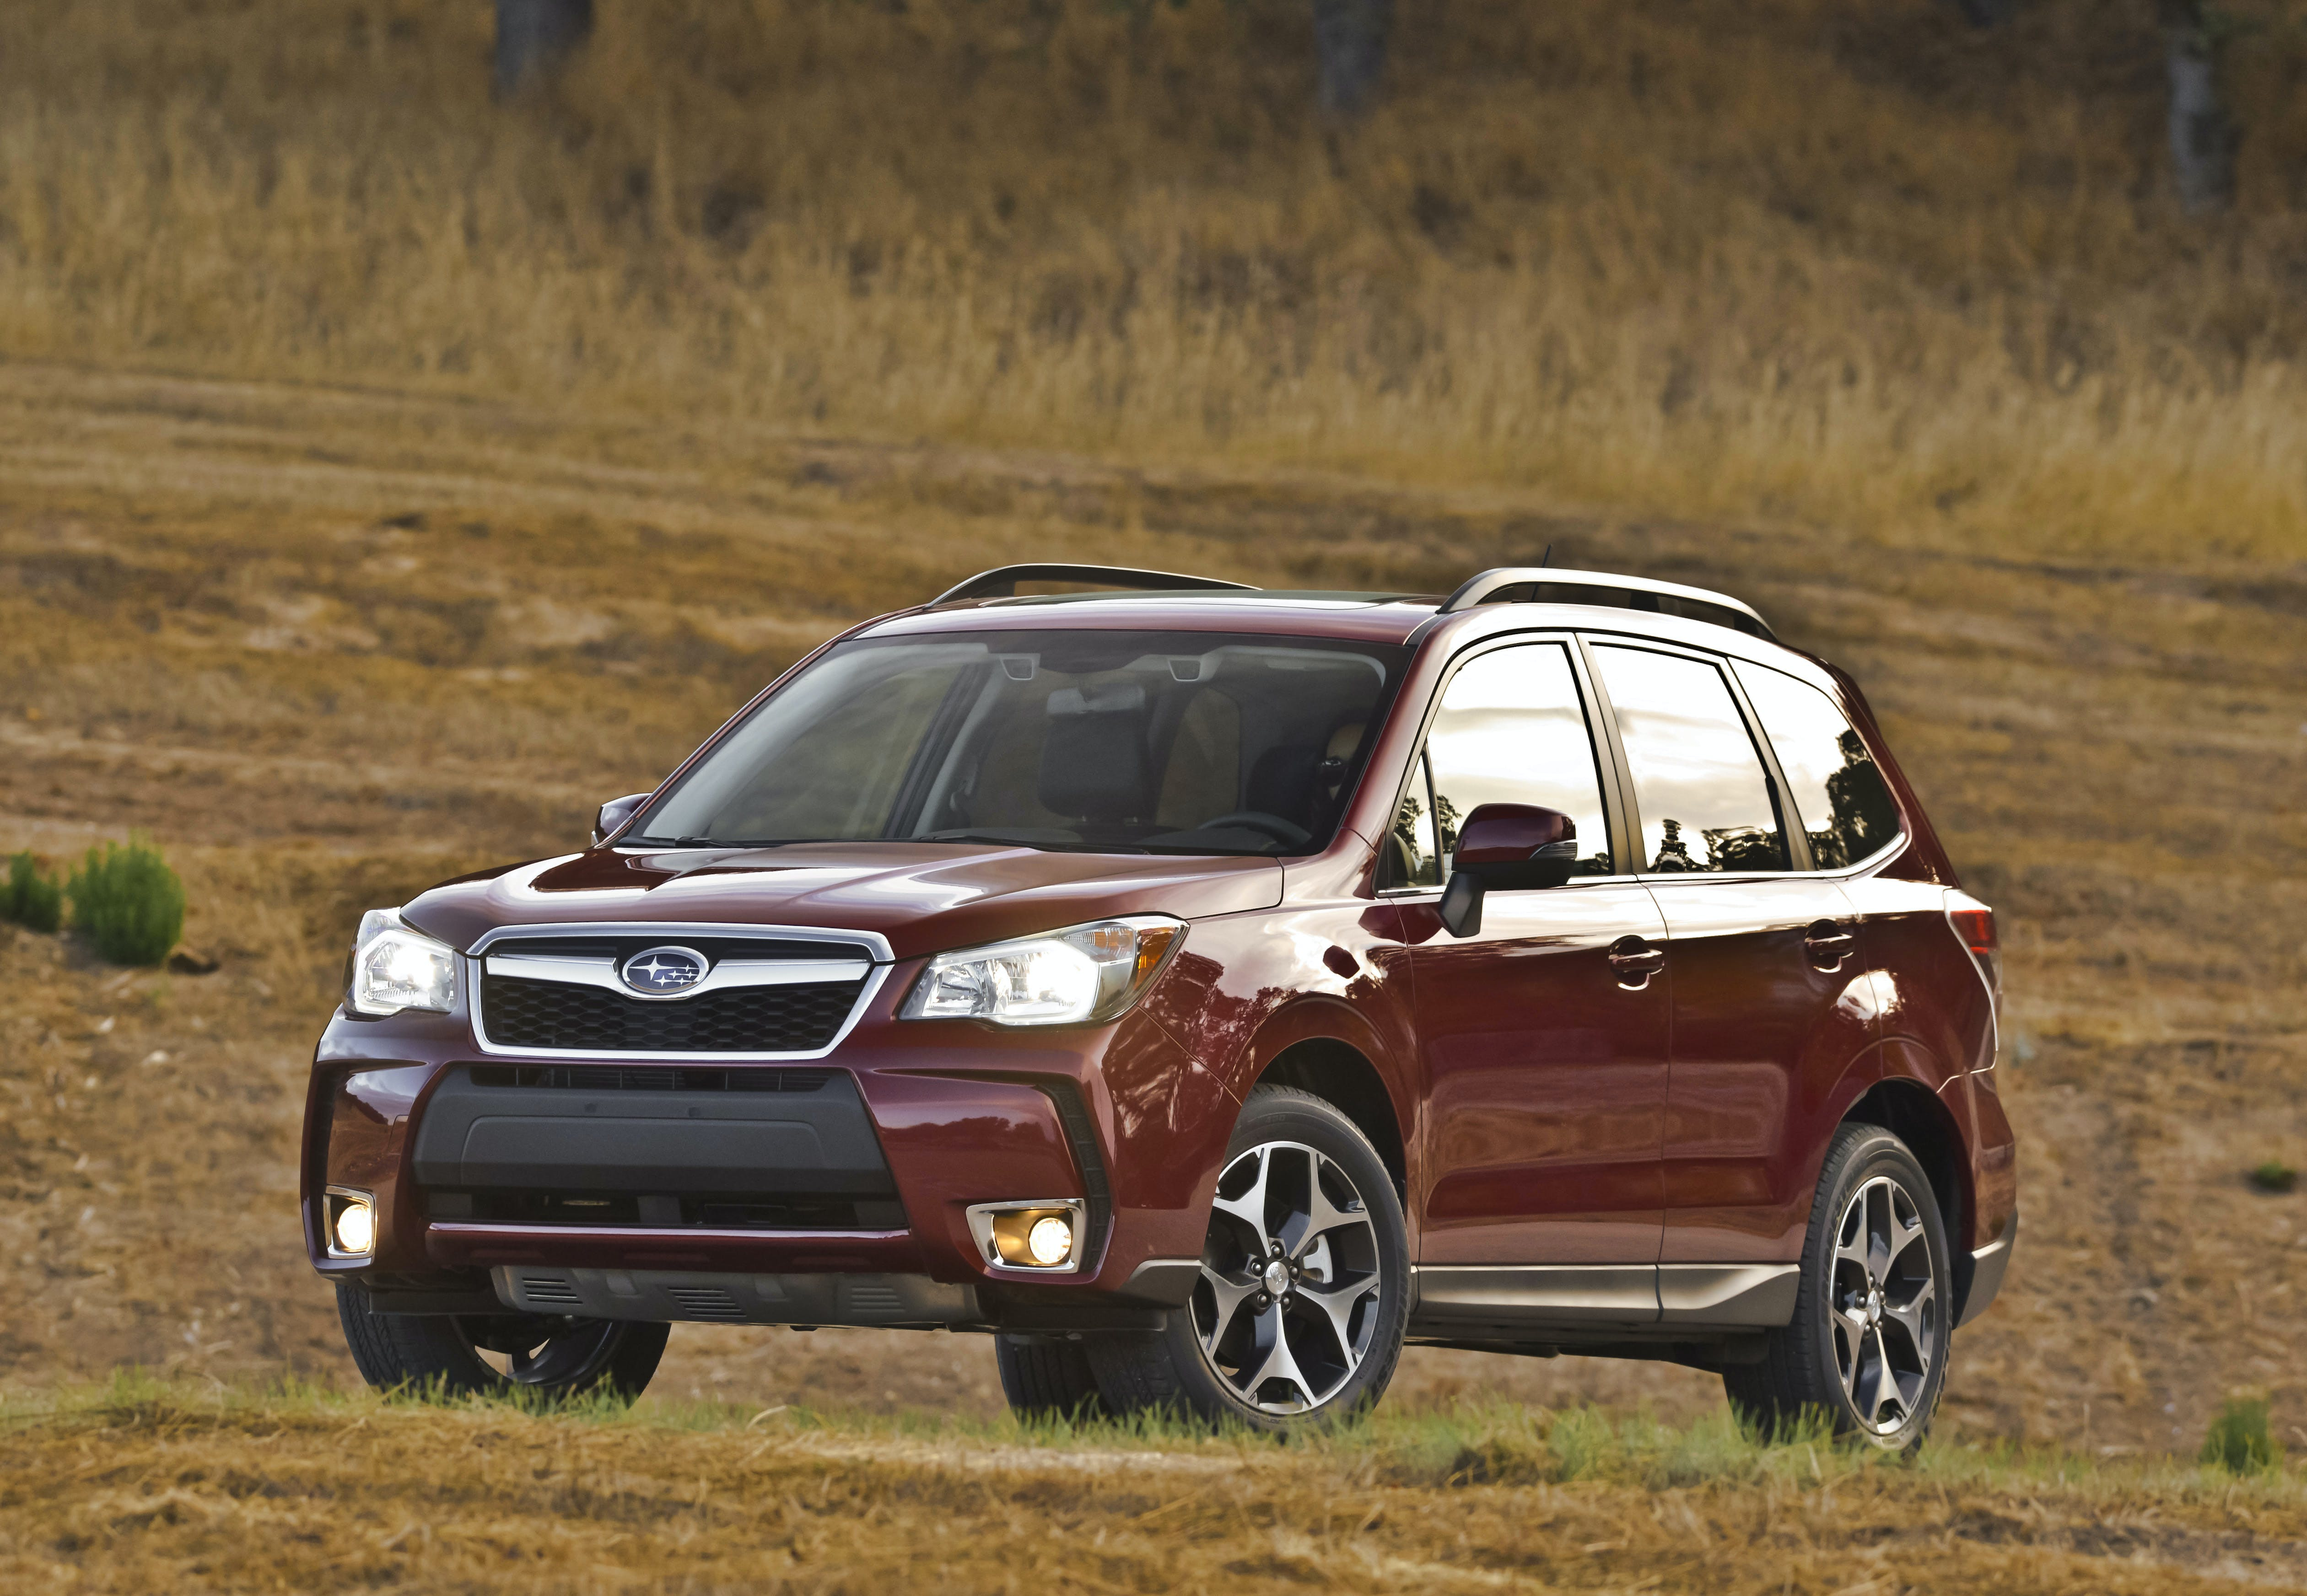 2014 Subaru Forester Review | CARFAX Vehicle Research